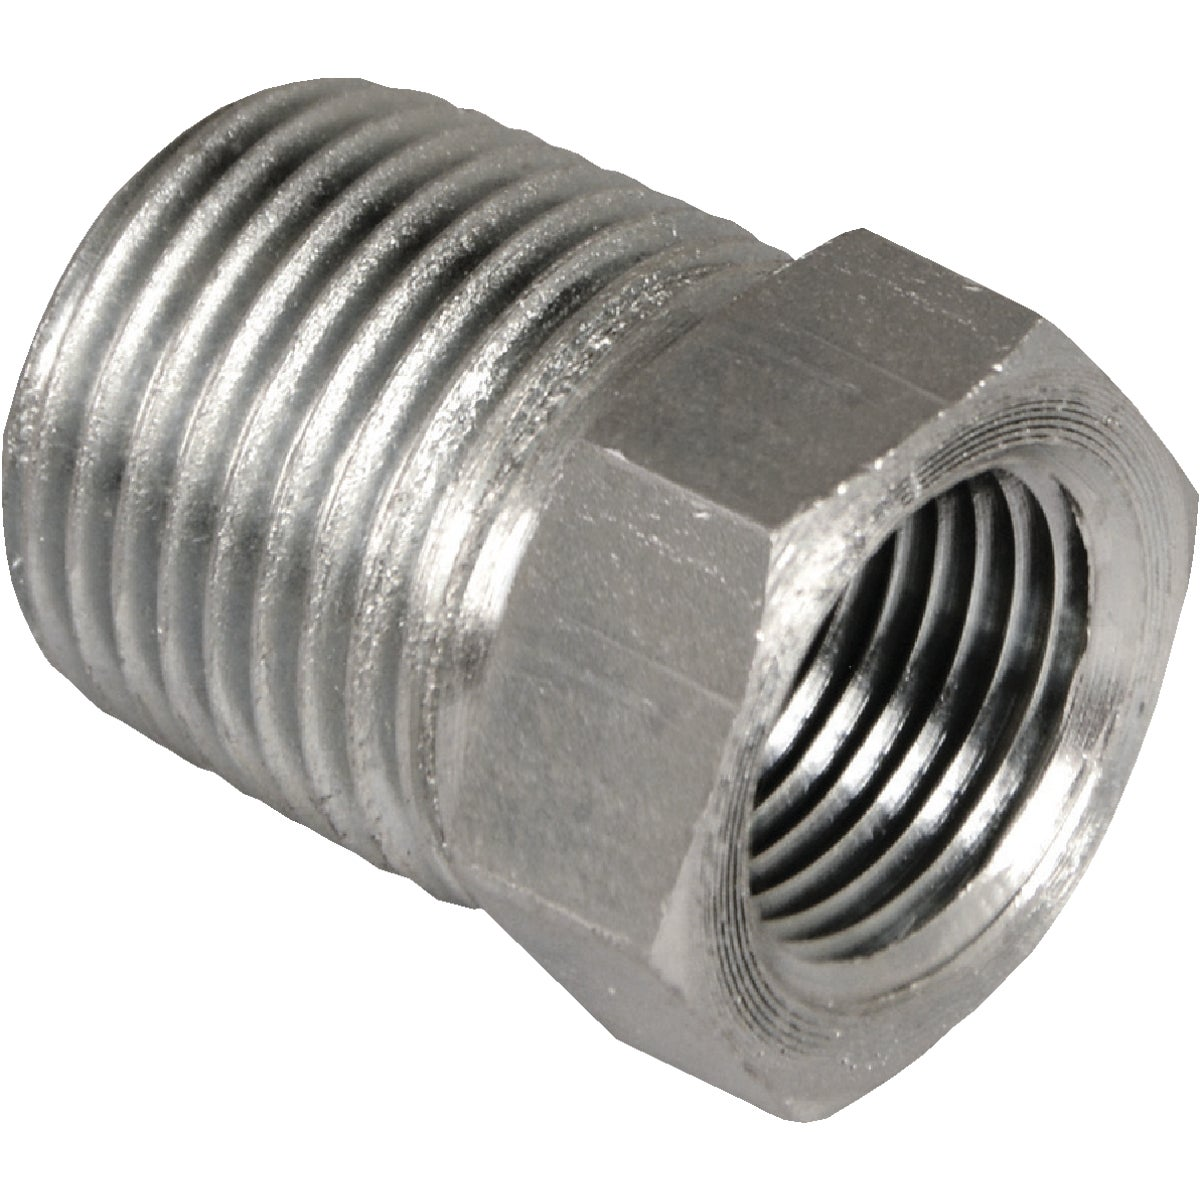 1/2MX3/8F HYD ADAPTER - 39035478 by Apache Hose Belting